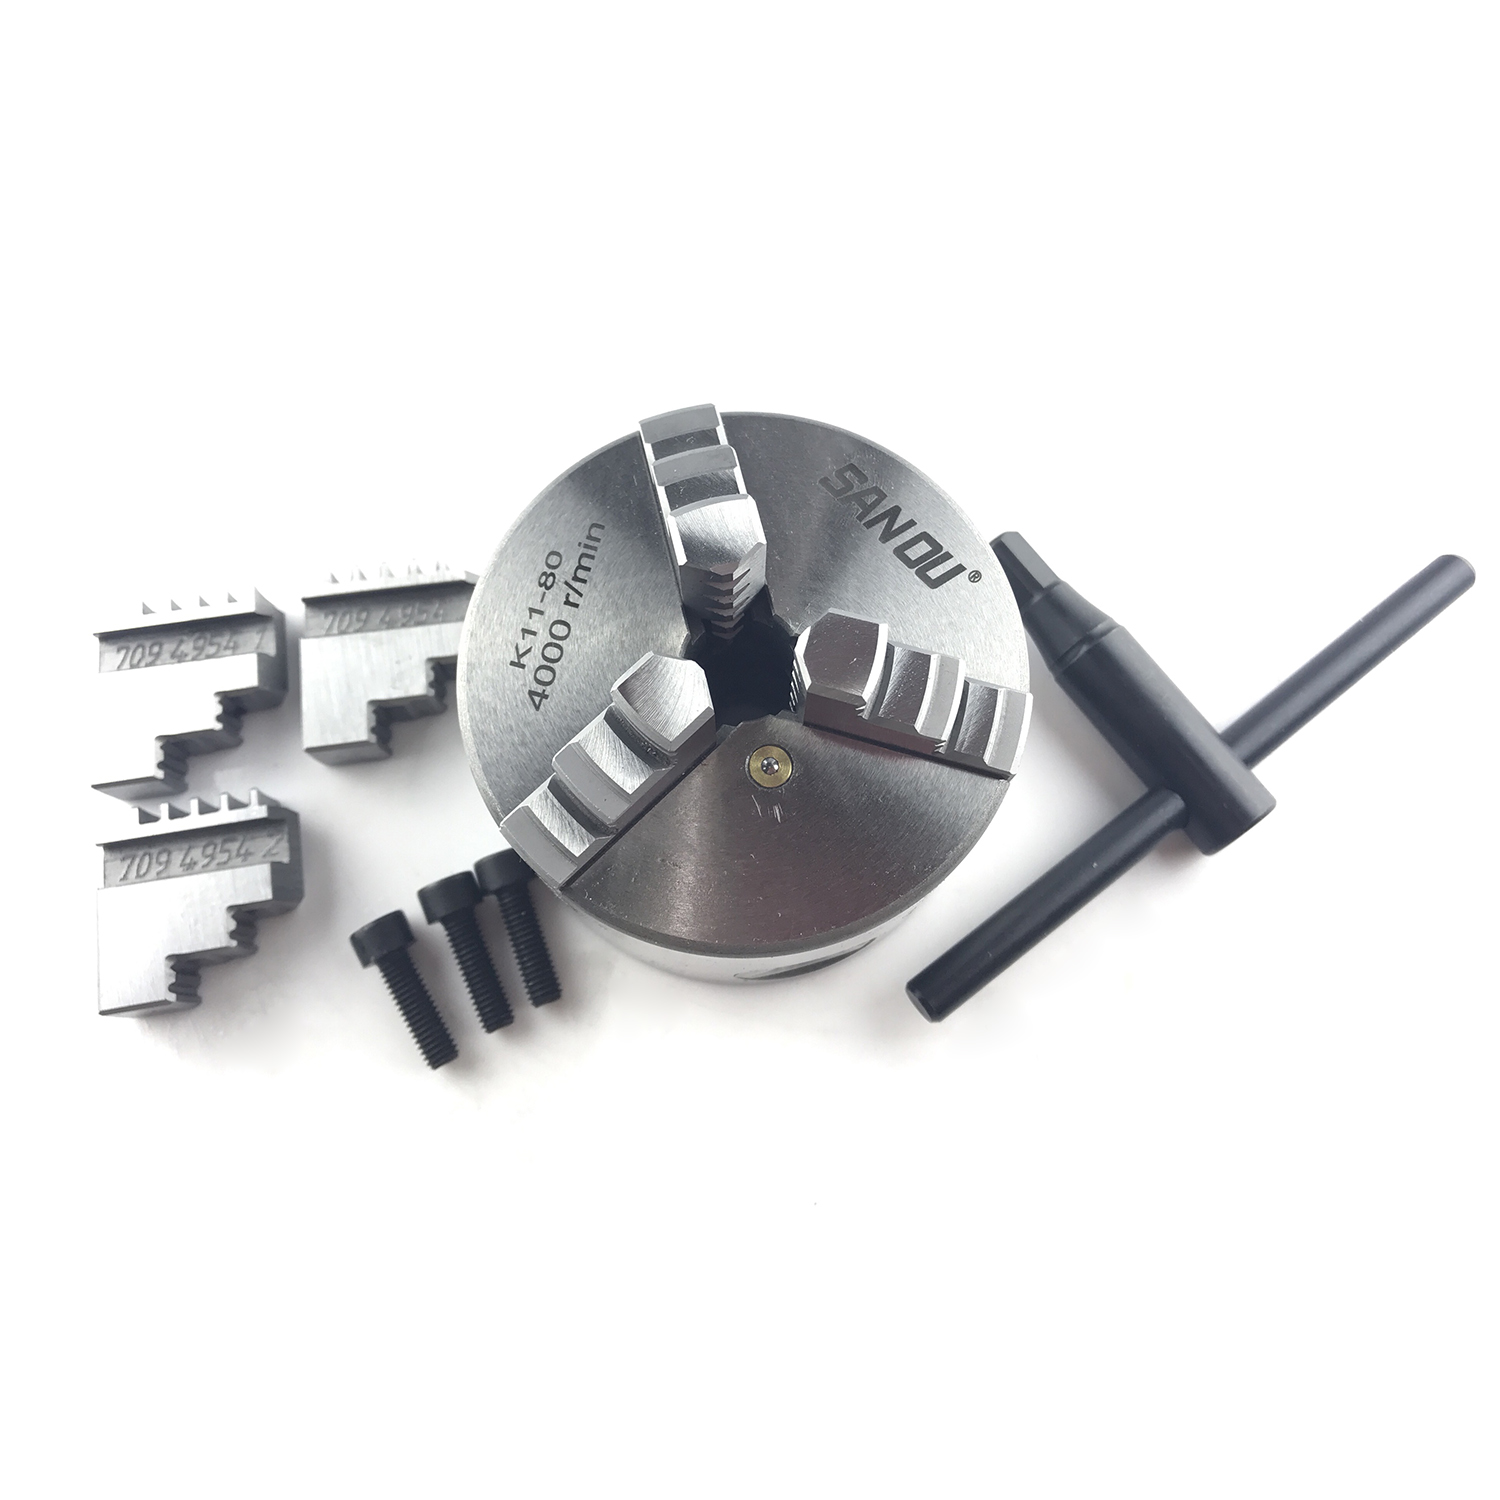 DSHA -SAN OU 3 Jaw K11-80 Metal Lathe Chuck Manual Chuck Self-centering Lathe Parts with Wrench and 3pcs Screws printio death clouds